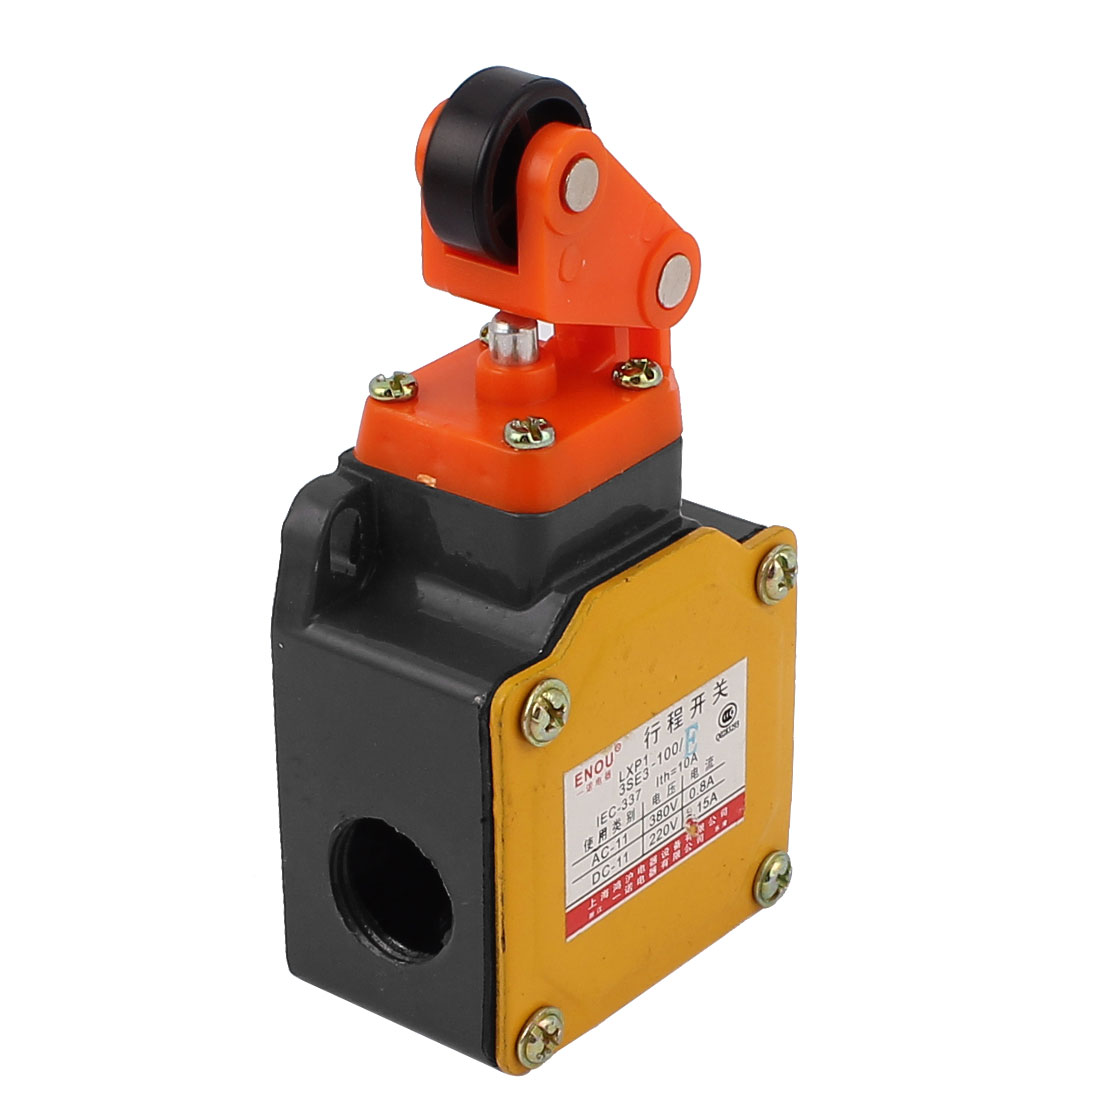 LXP13SE3-100/E DPST 3 Holes Roll Pushbutton Enclosed Limit Switch